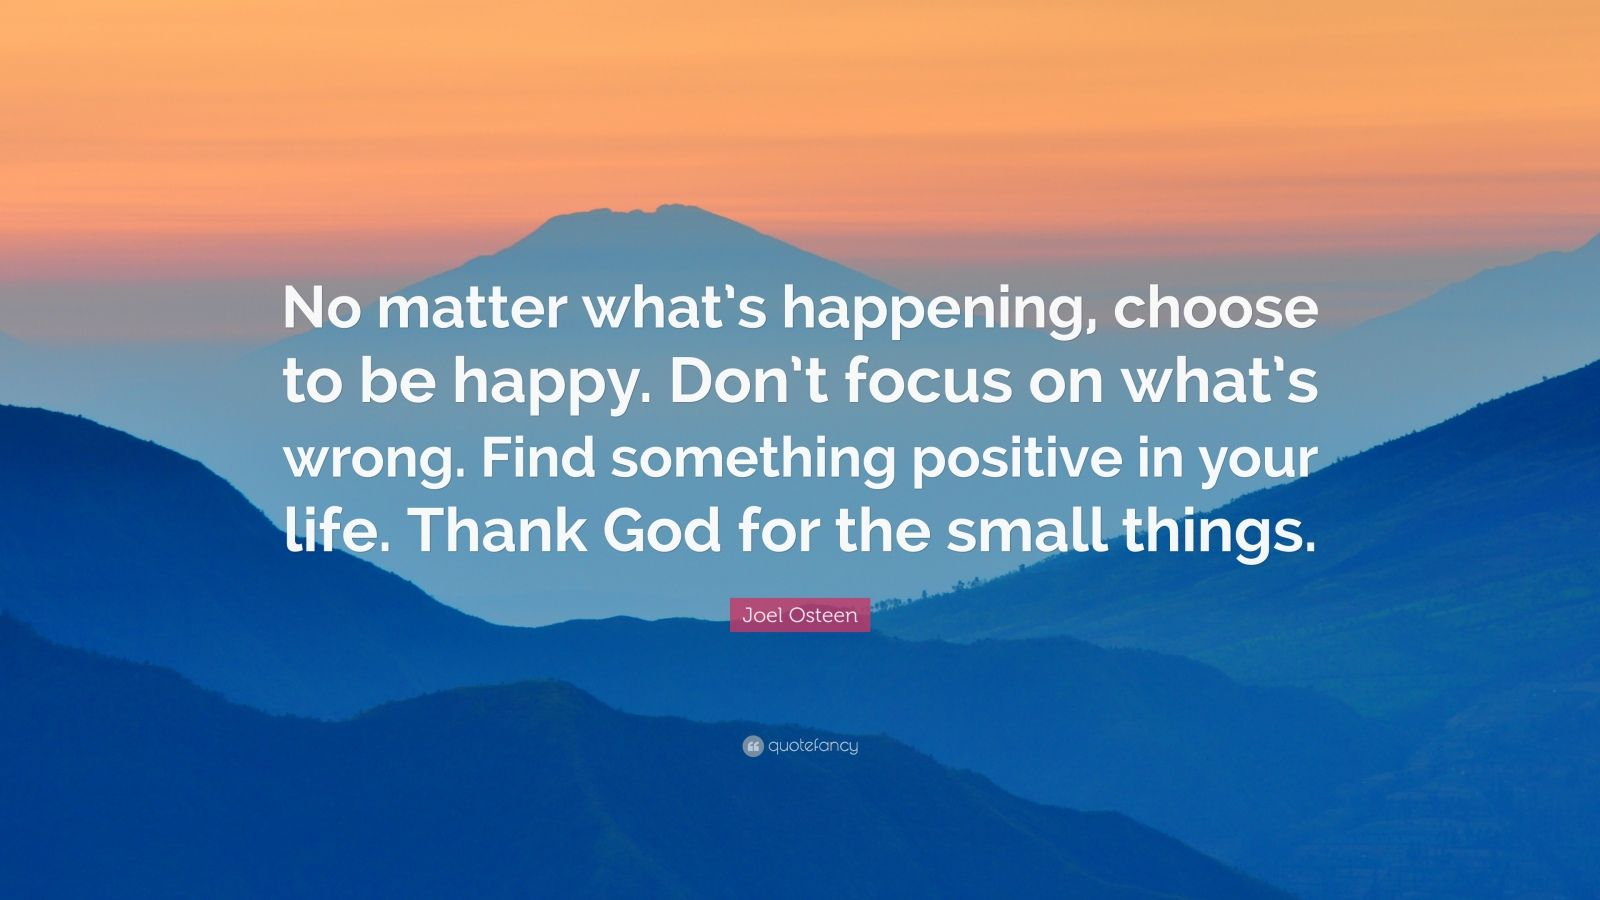 """Joel Osteen Quote: """"No matter what's happening, choose to be happy. Don't focus on what's wrong. Find something positive in your life. Thank God for the small things."""""""